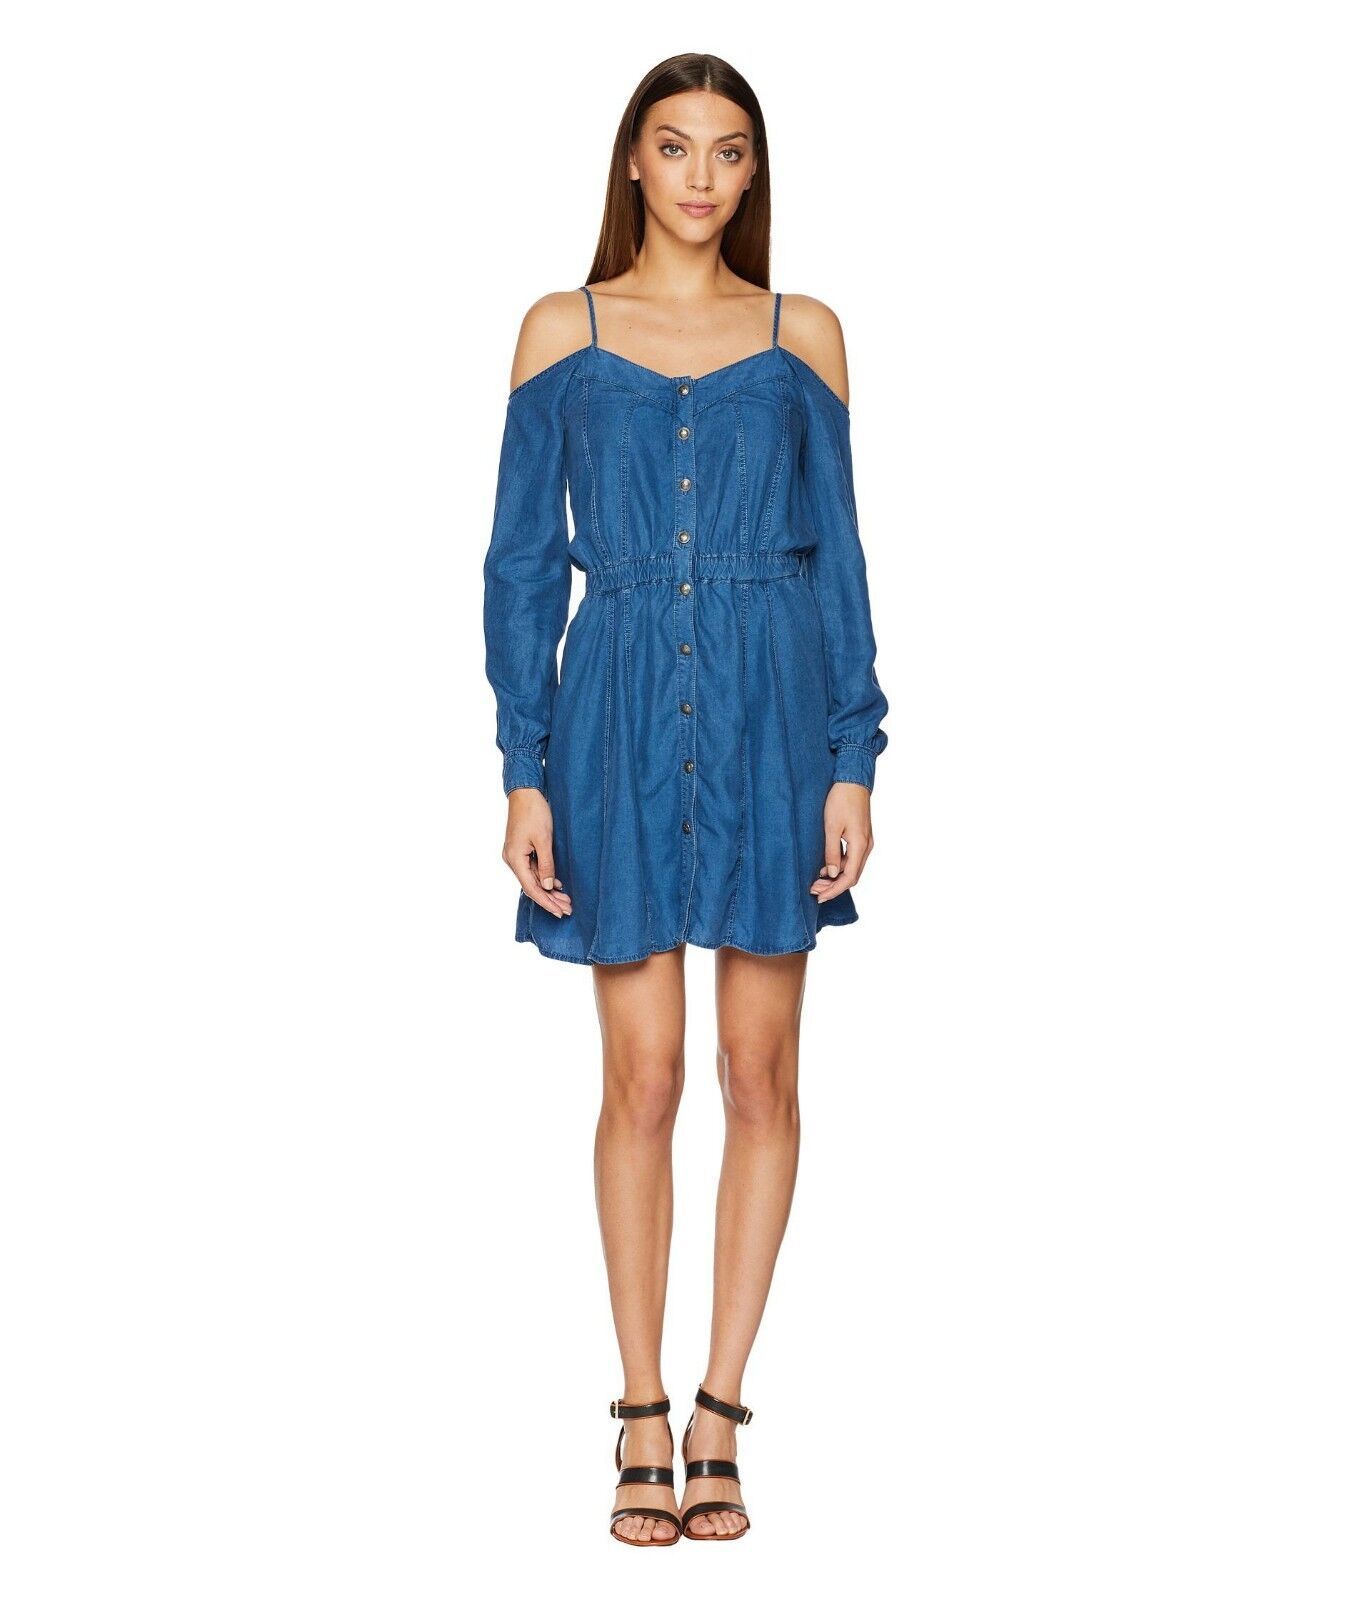 The Kooples Denim Mini Bare Off-shoulder Dress Size XS And S M New Without Tags